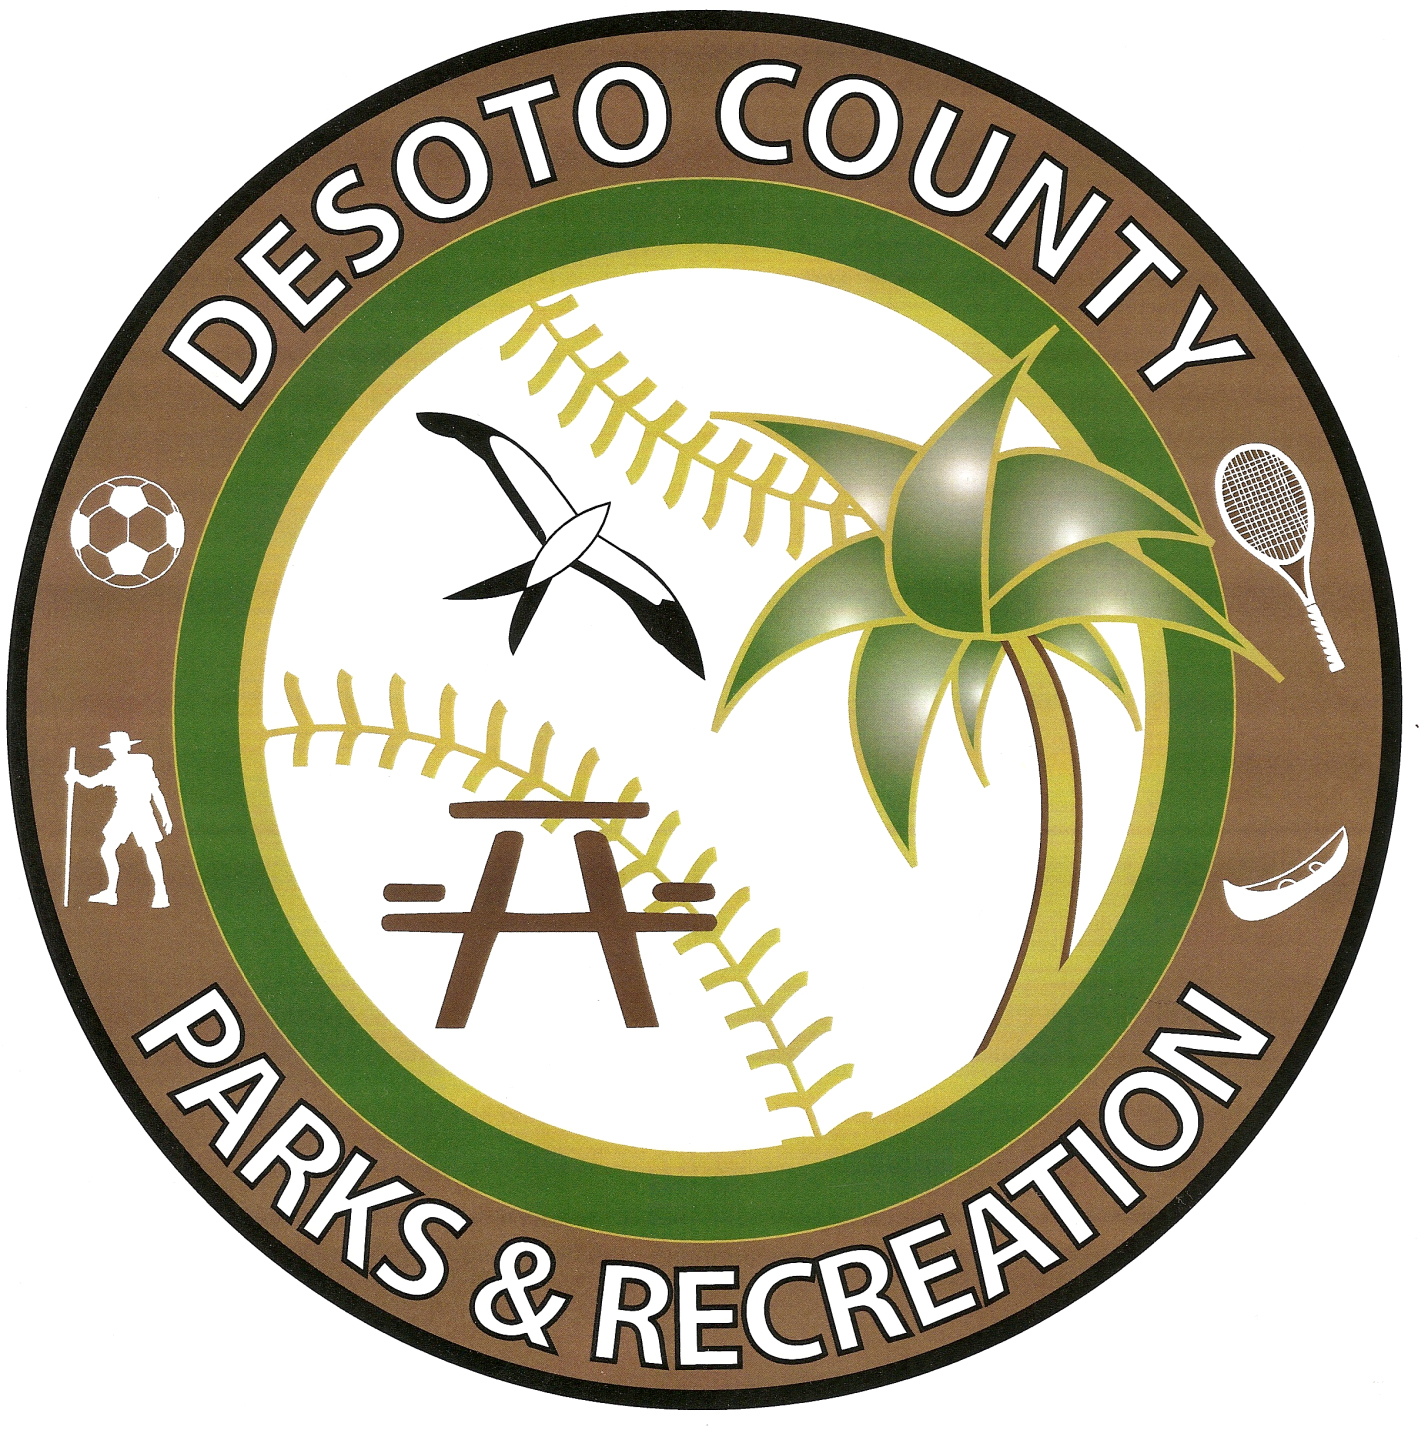 DeSoto County Parks and Recreation Seal